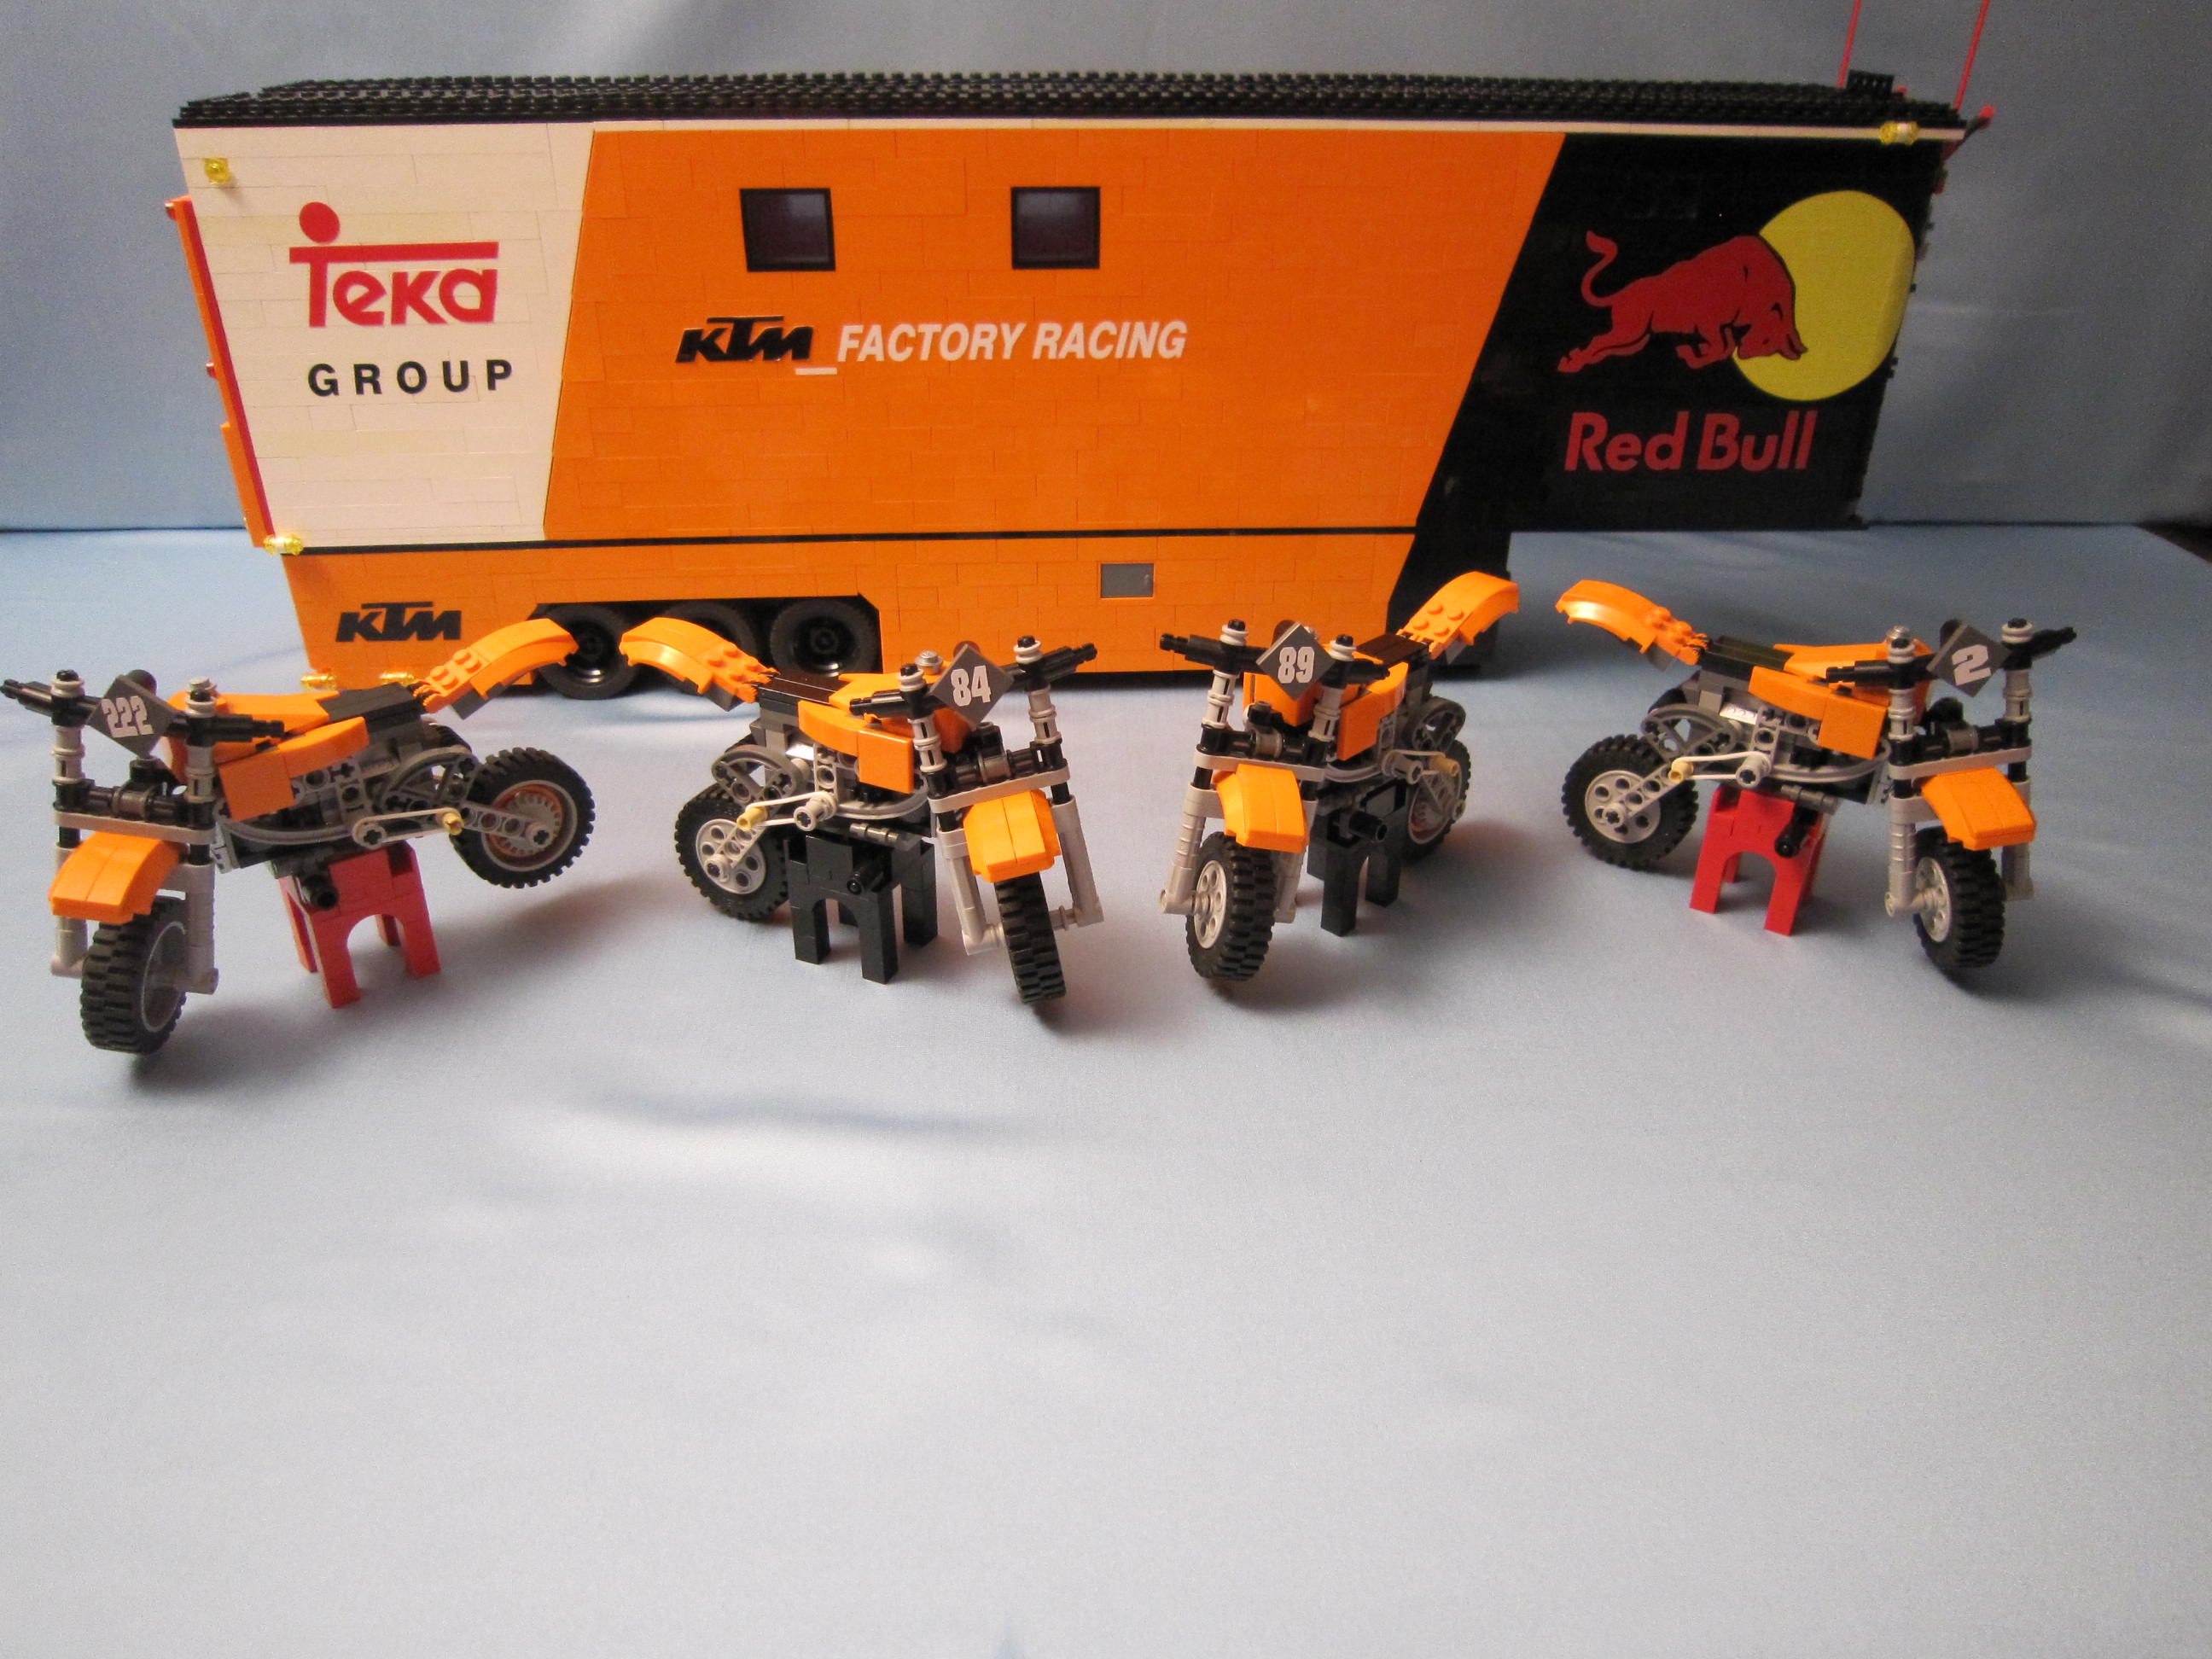 tribute_ktm_factory_racing_033.jpg